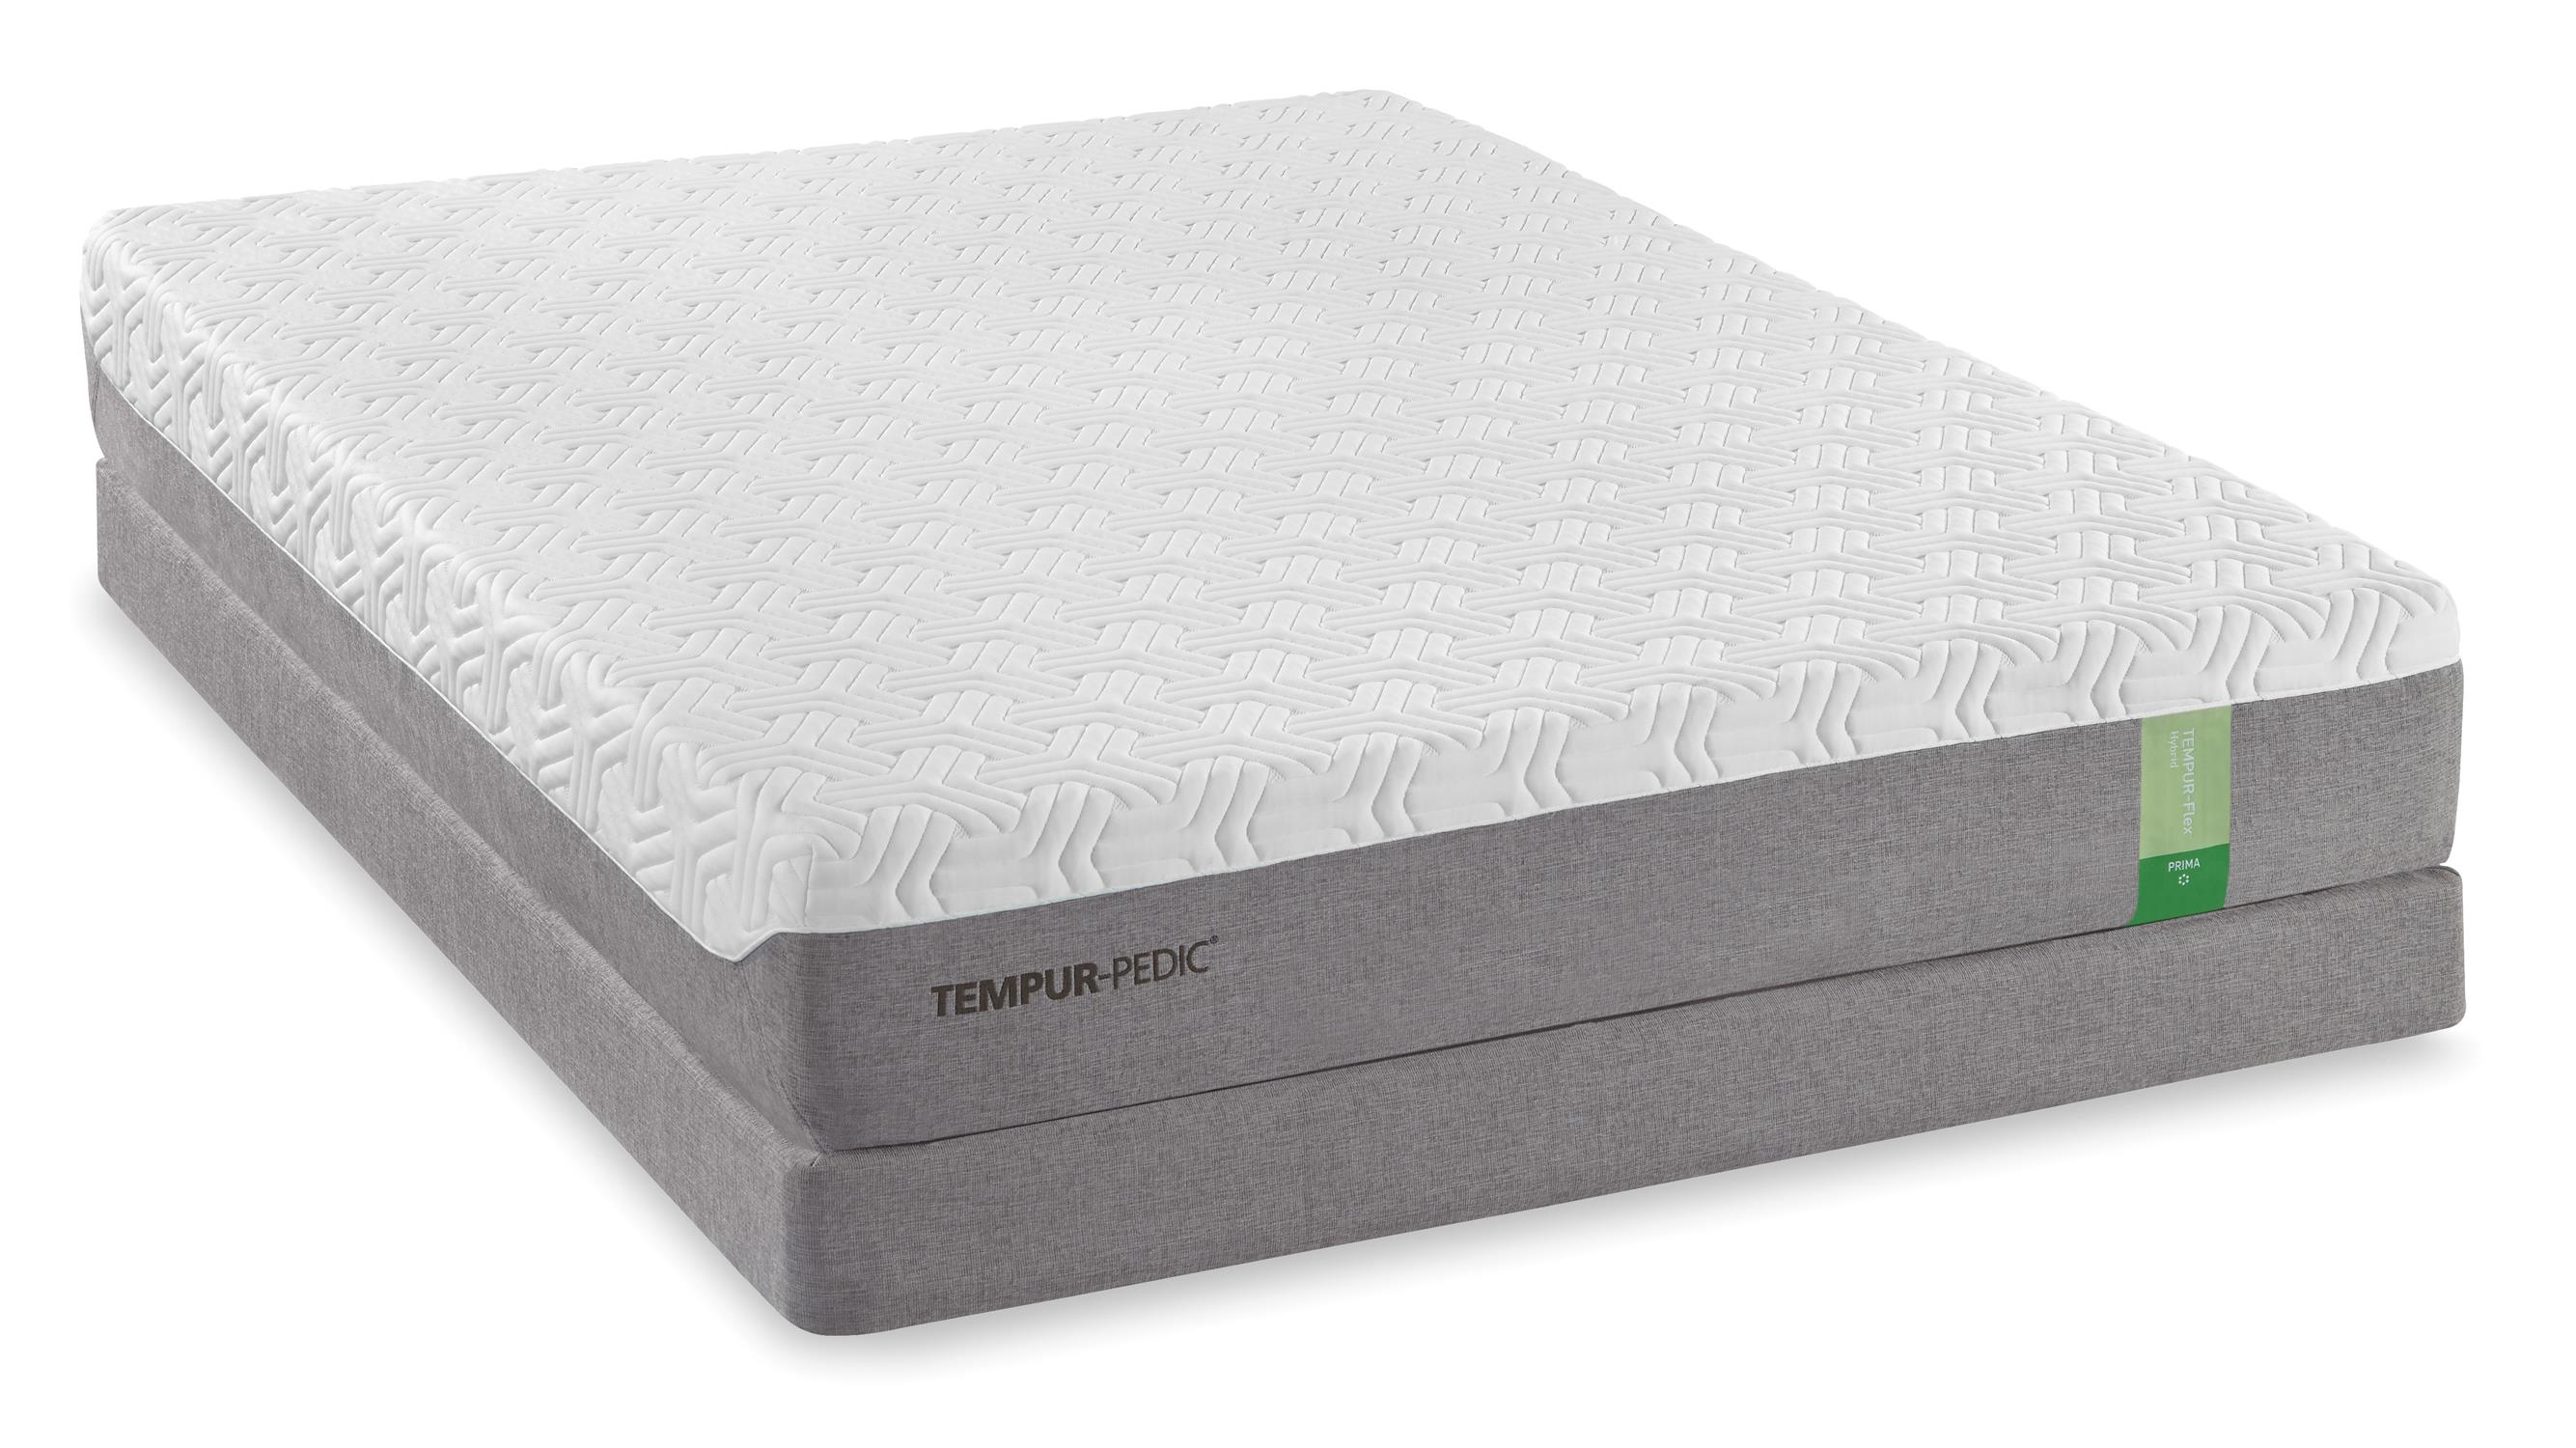 Tempur-Pedic® TEMPUR-Flex Prima Queen Medium Firm Mattress Set - Item Number: 10115250+25565250